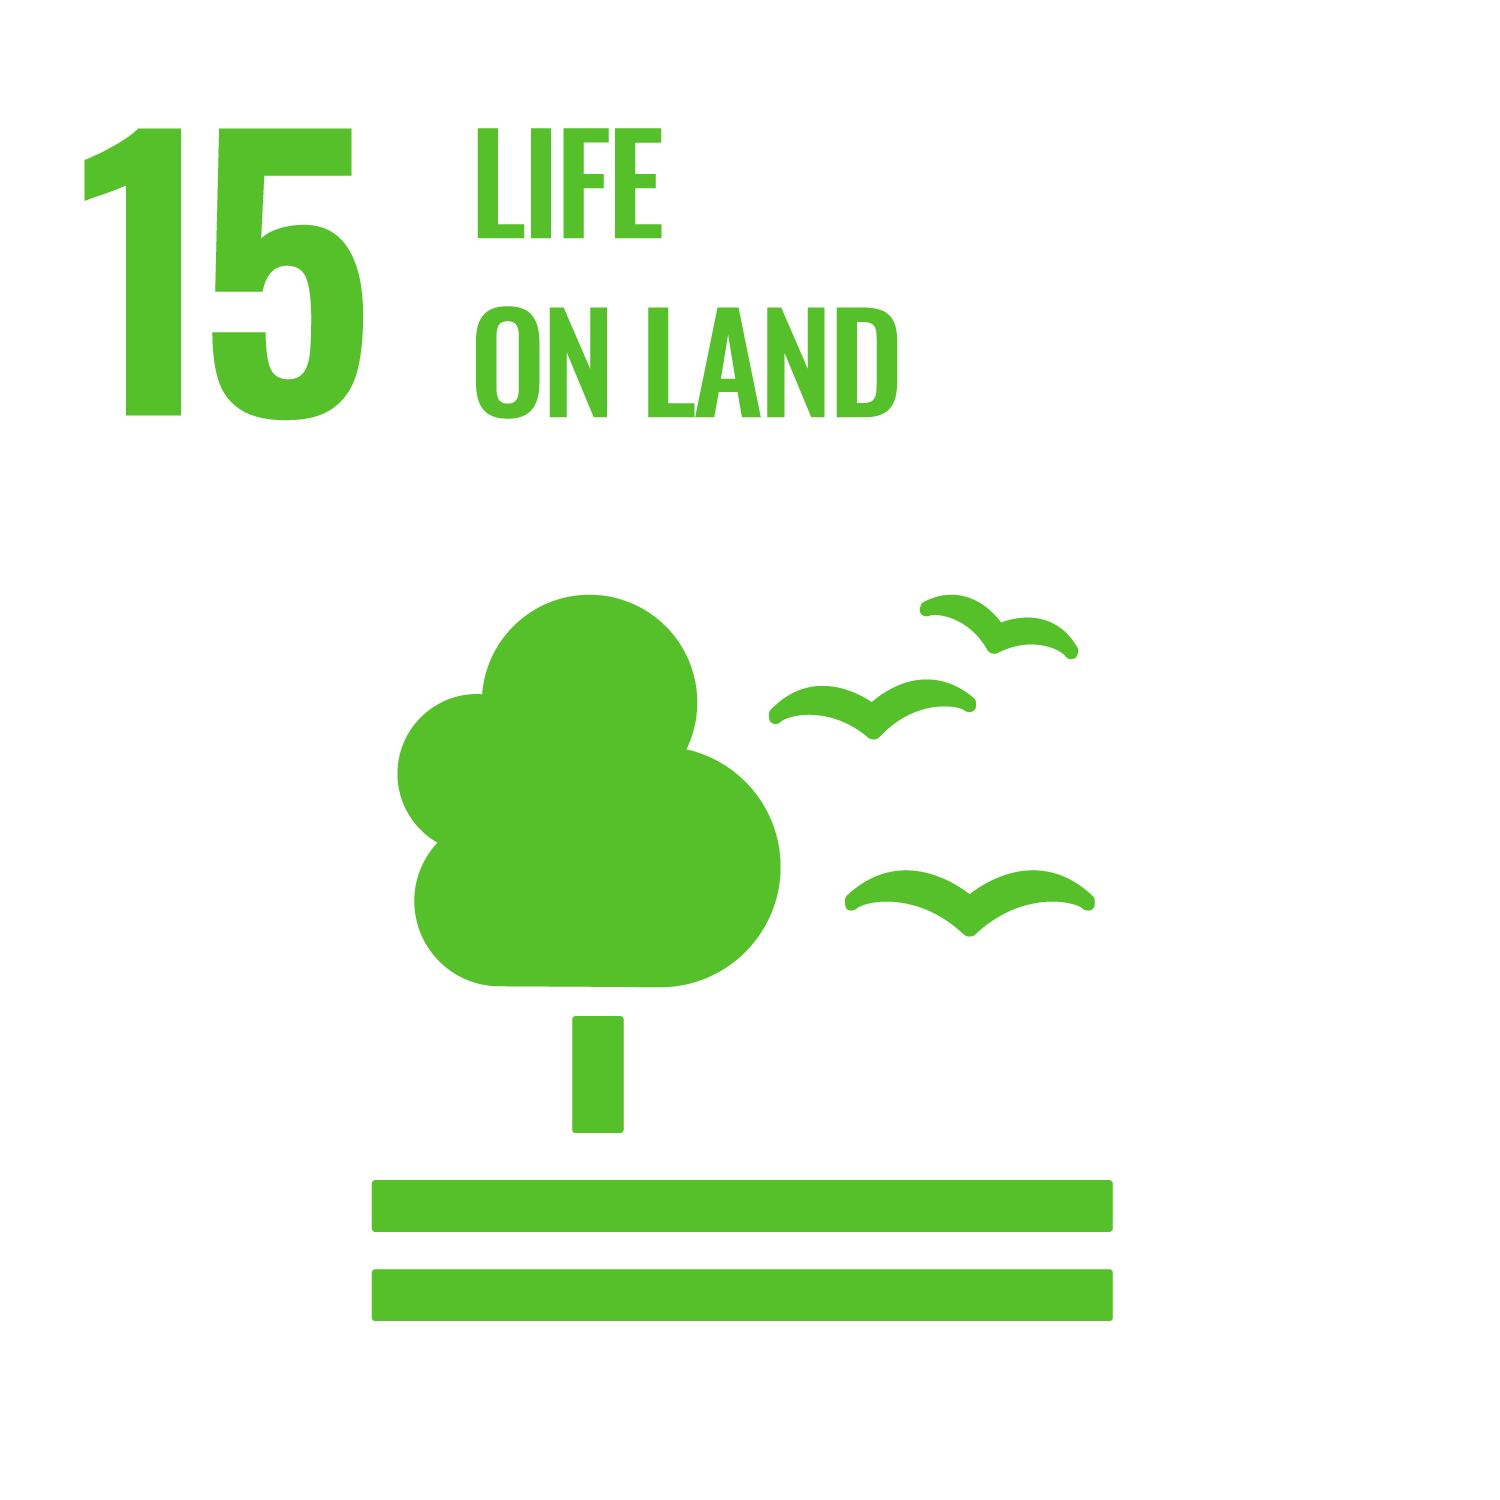 We support SDG 15 Life on land - …to halt biodiversity loss and promote the sustainable use of ecosystems. The UEBT Standard seeks to ensure the conservation, restoration and sustainable use of biodiversity and promotes the fair and equitable sharing of the benefits from the utilisation of genetic resources.